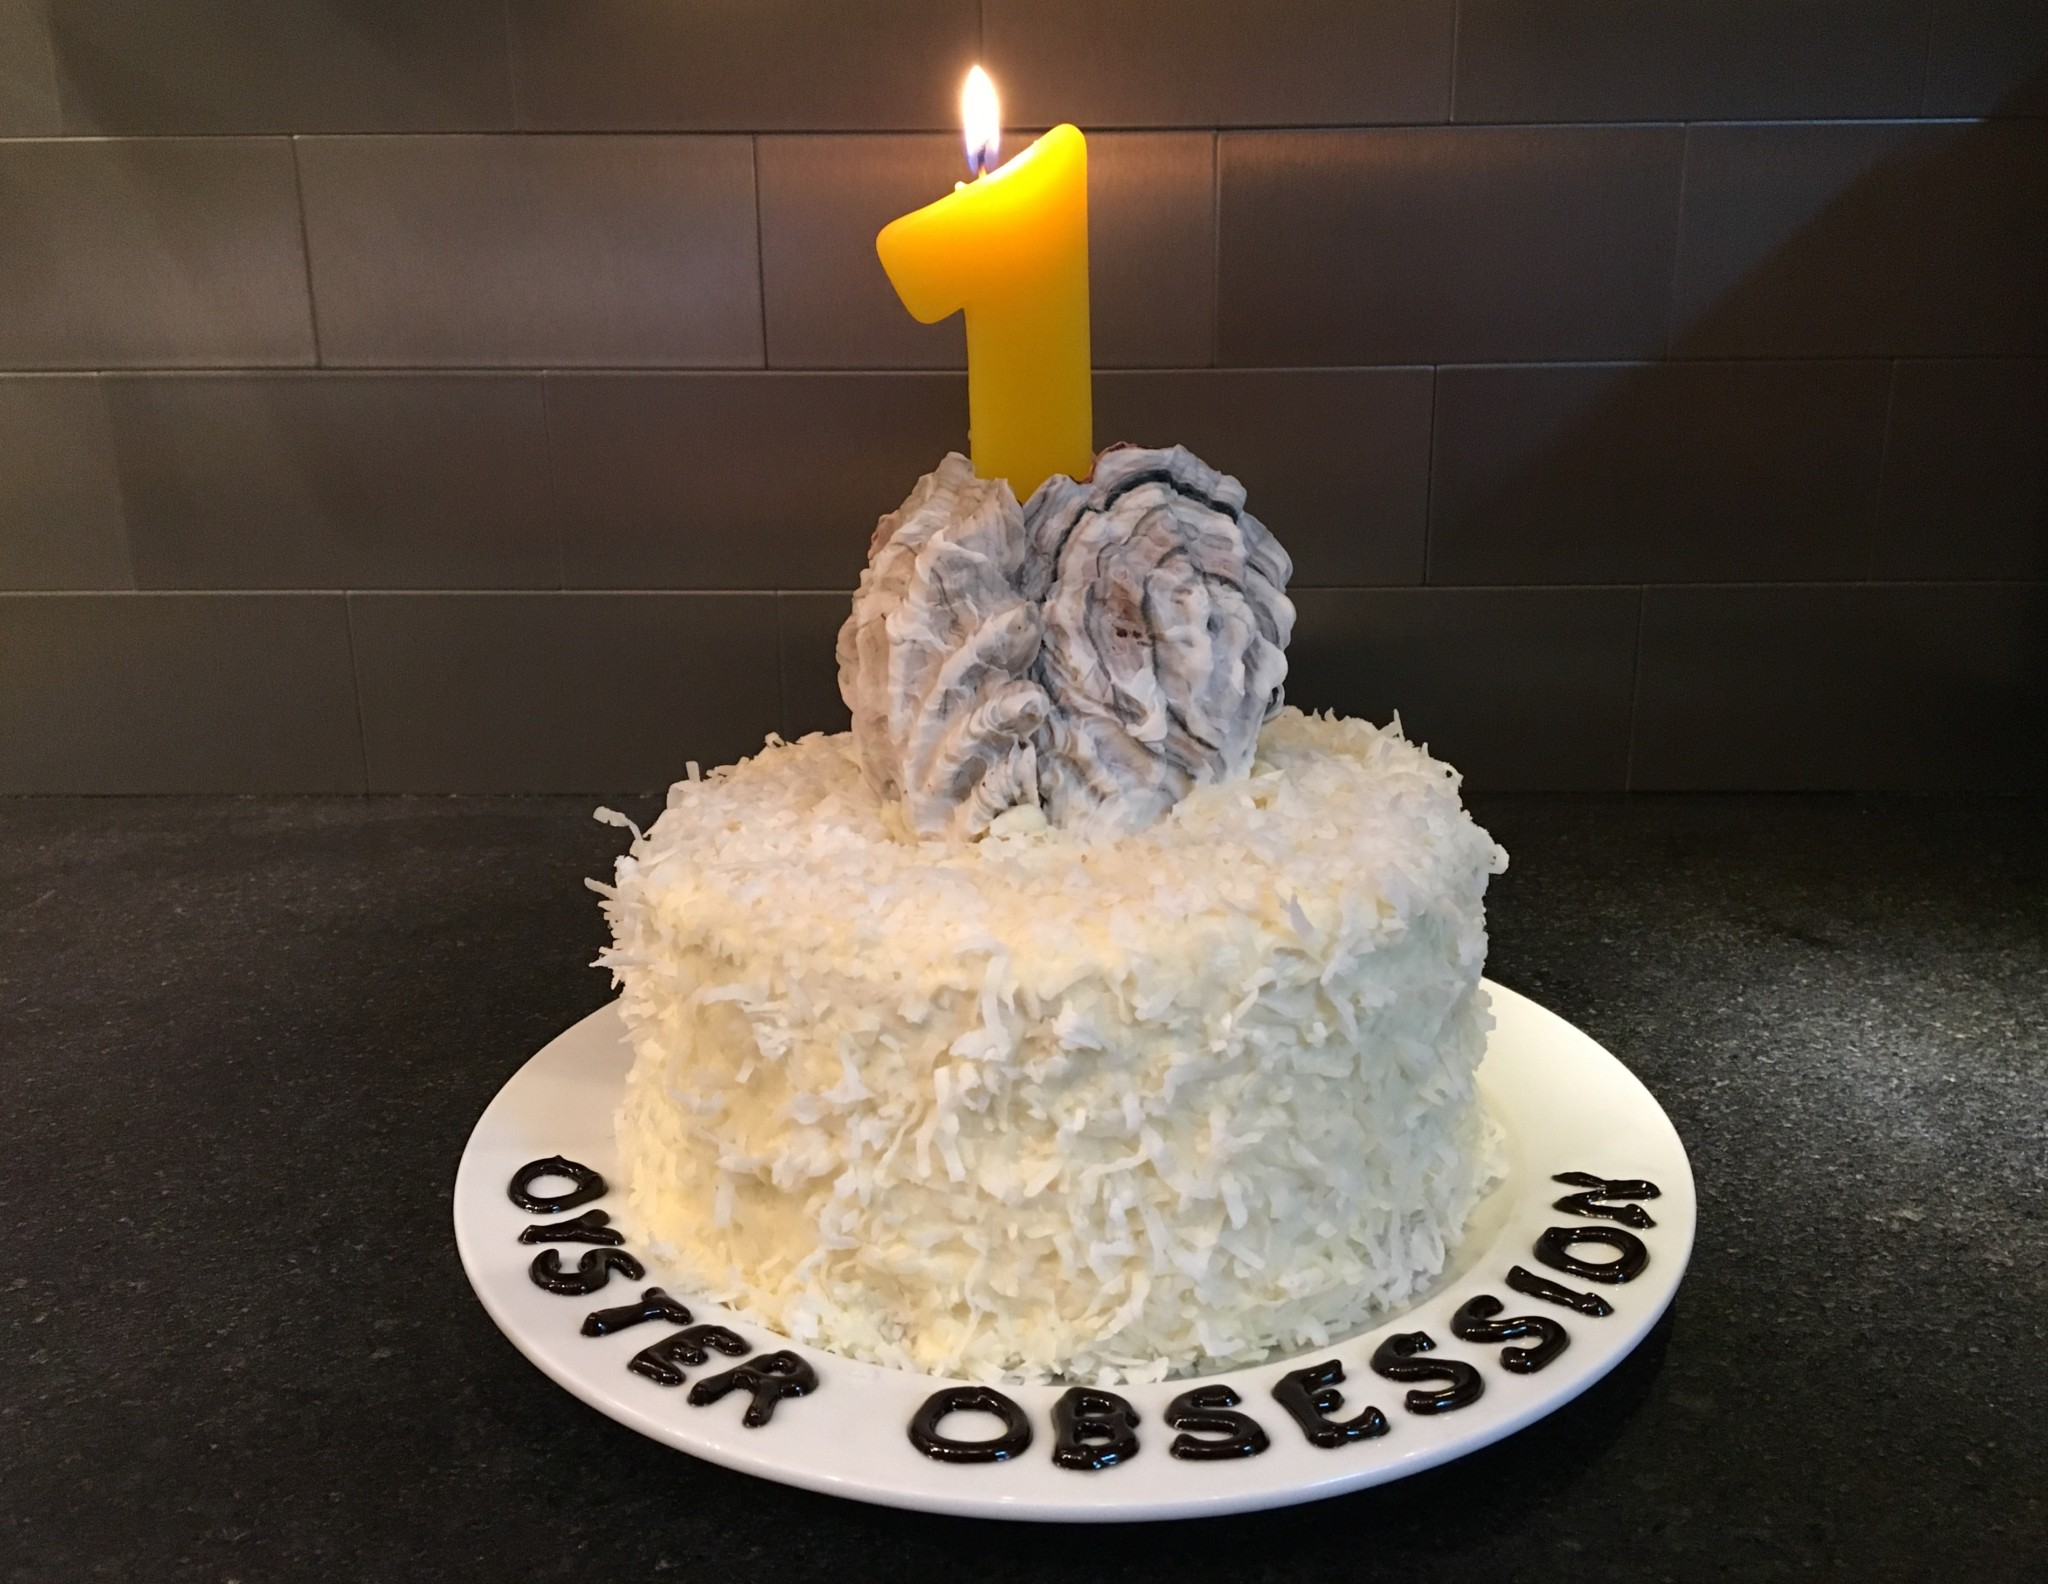 Oyster Obsession birthday cake with edible chocolate oyster shells